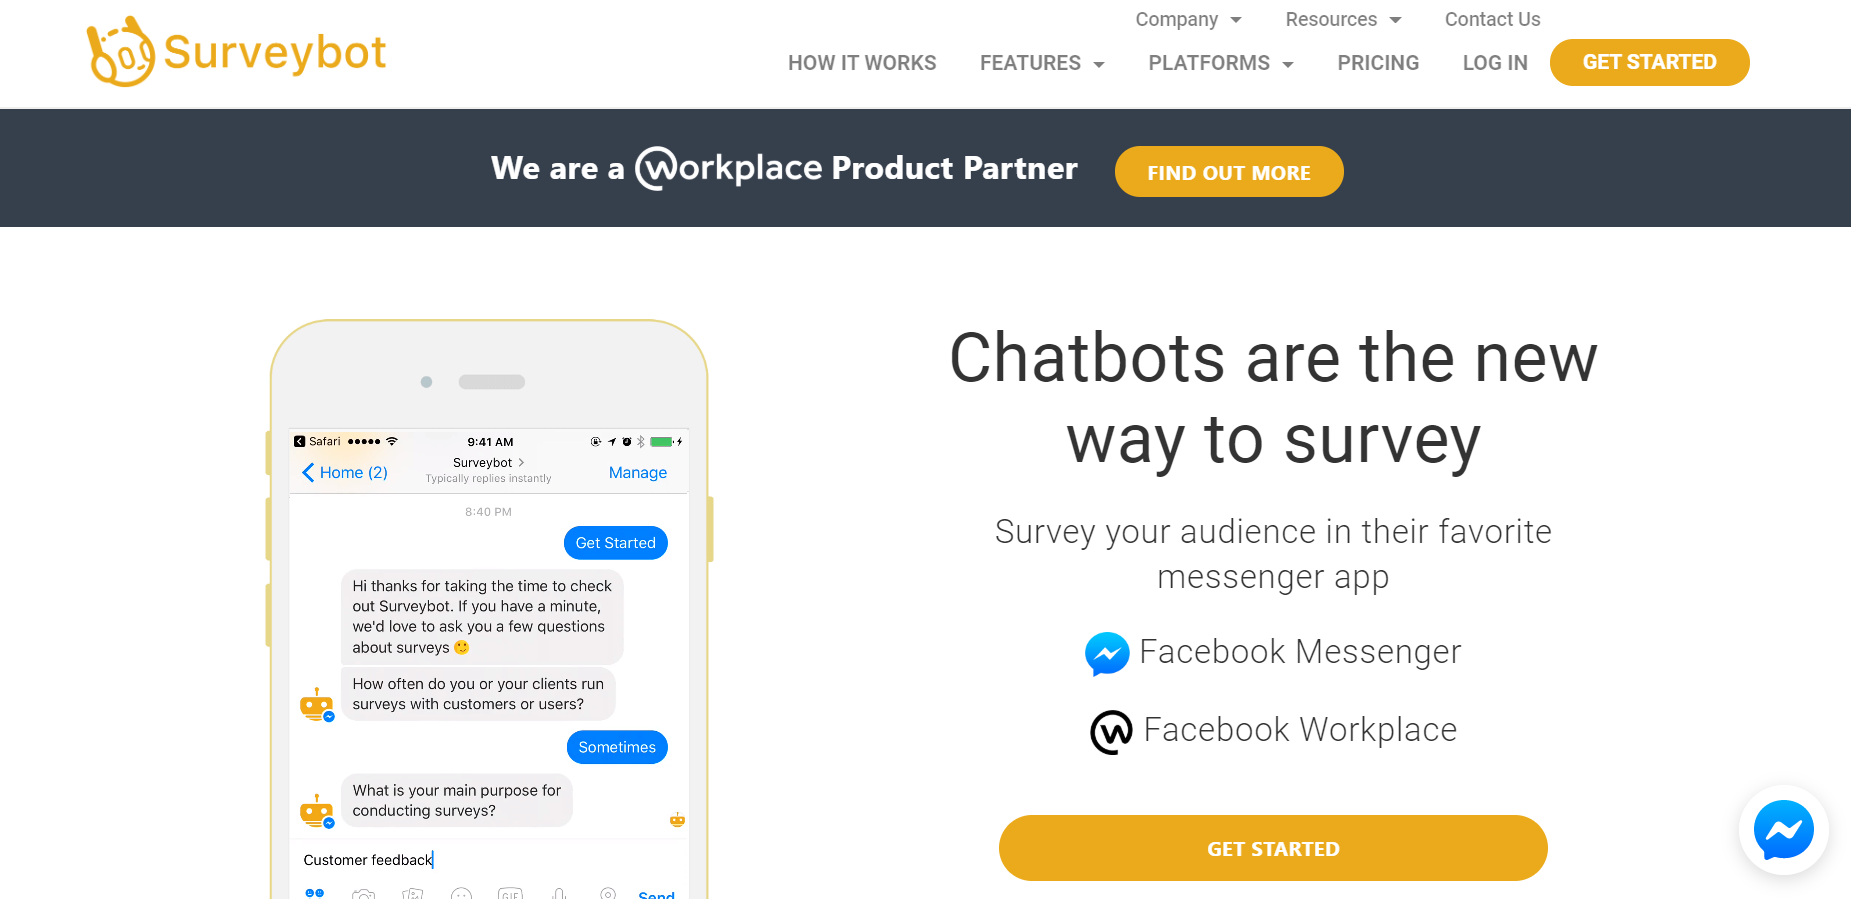 best chatbots for marketing - Surveybot